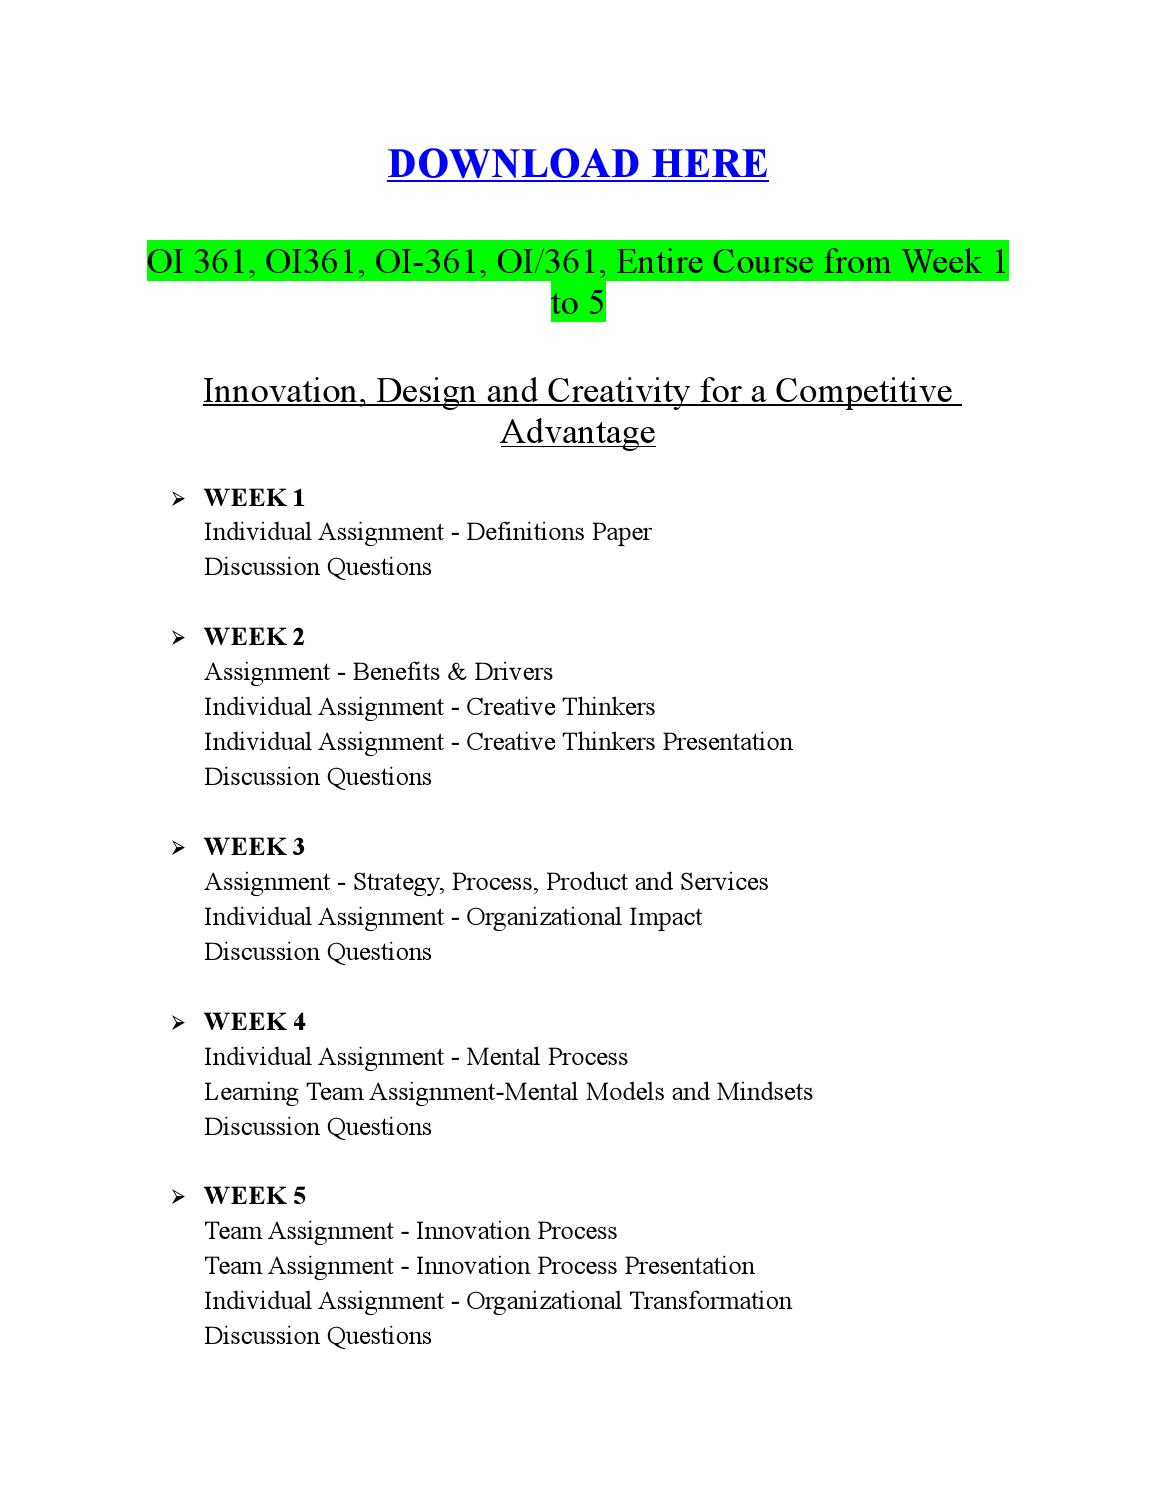 oi 361 mental models mindsets paper Write a 1,050- to 1,400-word paper in which you compare and contrast the four styles of creative intelligence and their influence on organizational decision making discuss how the five forces influence mental models and mindsets.